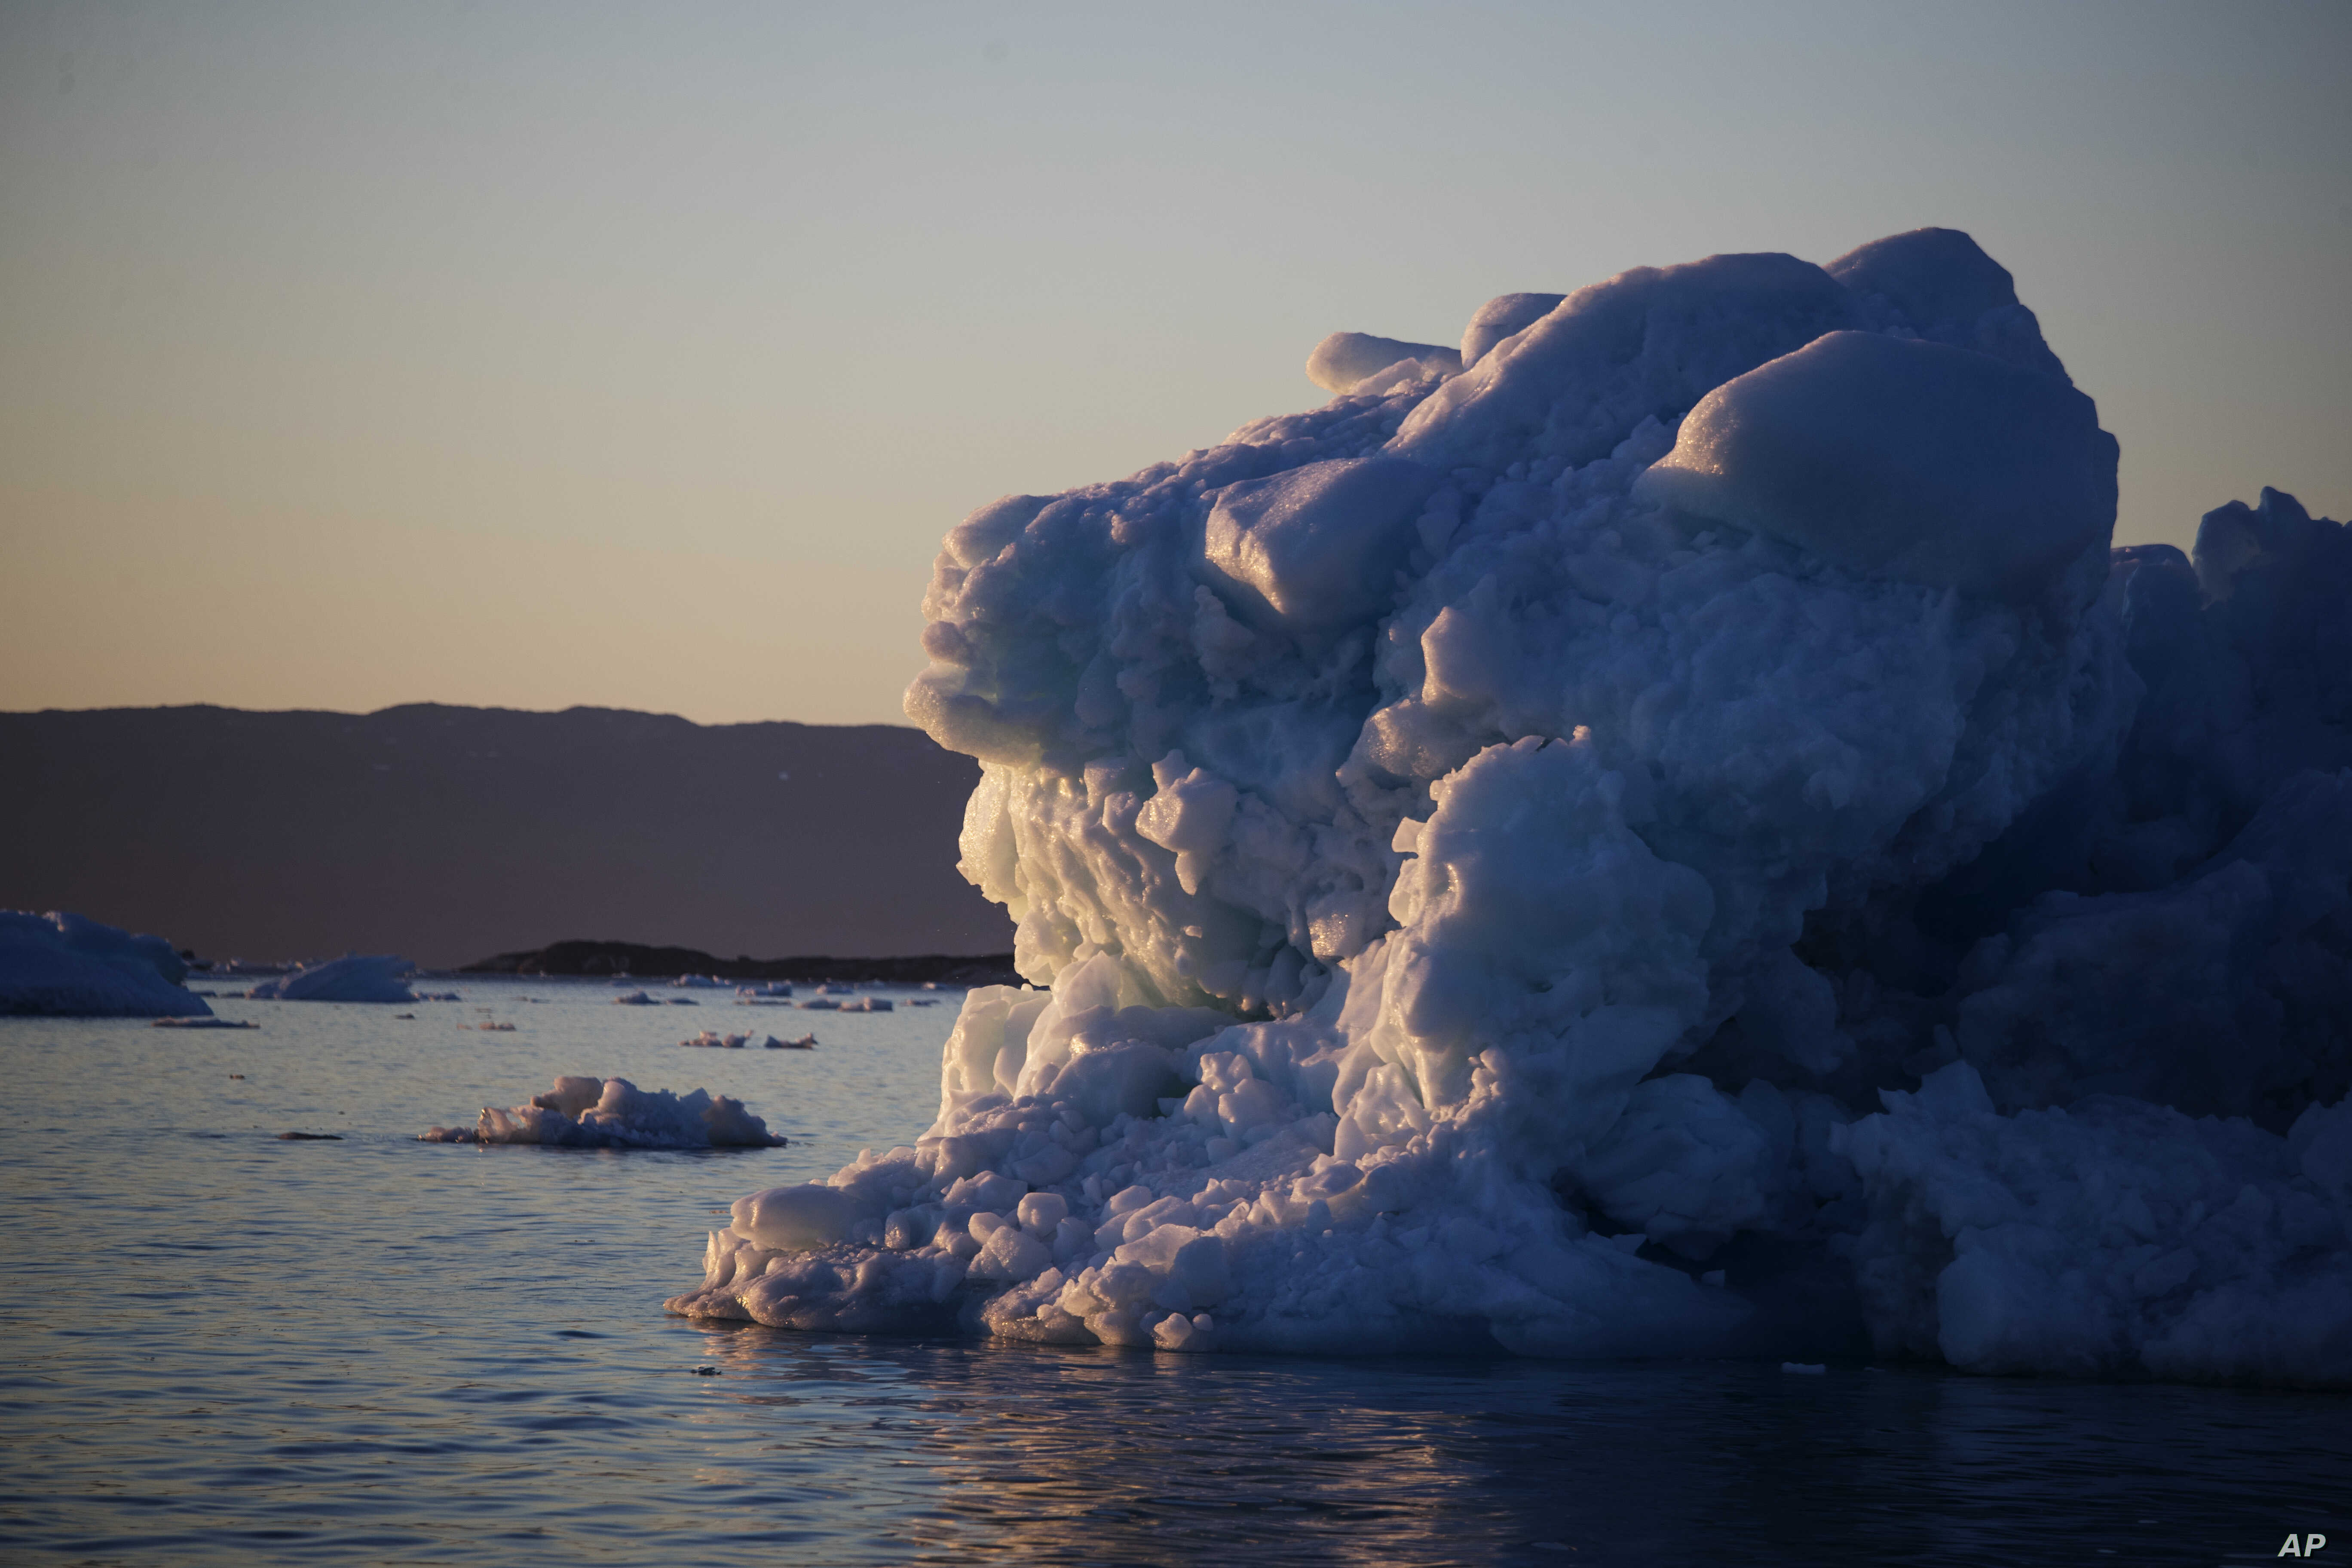 The suns sets against an iceberg floating in the Nuup Kangerlua Fjord near Nuuk in southwestern Greenland, Aug. 1, 2017. Greenland's glaciers have been melting and retreating at an accelerated pace in recent years due to warmer temperatures.